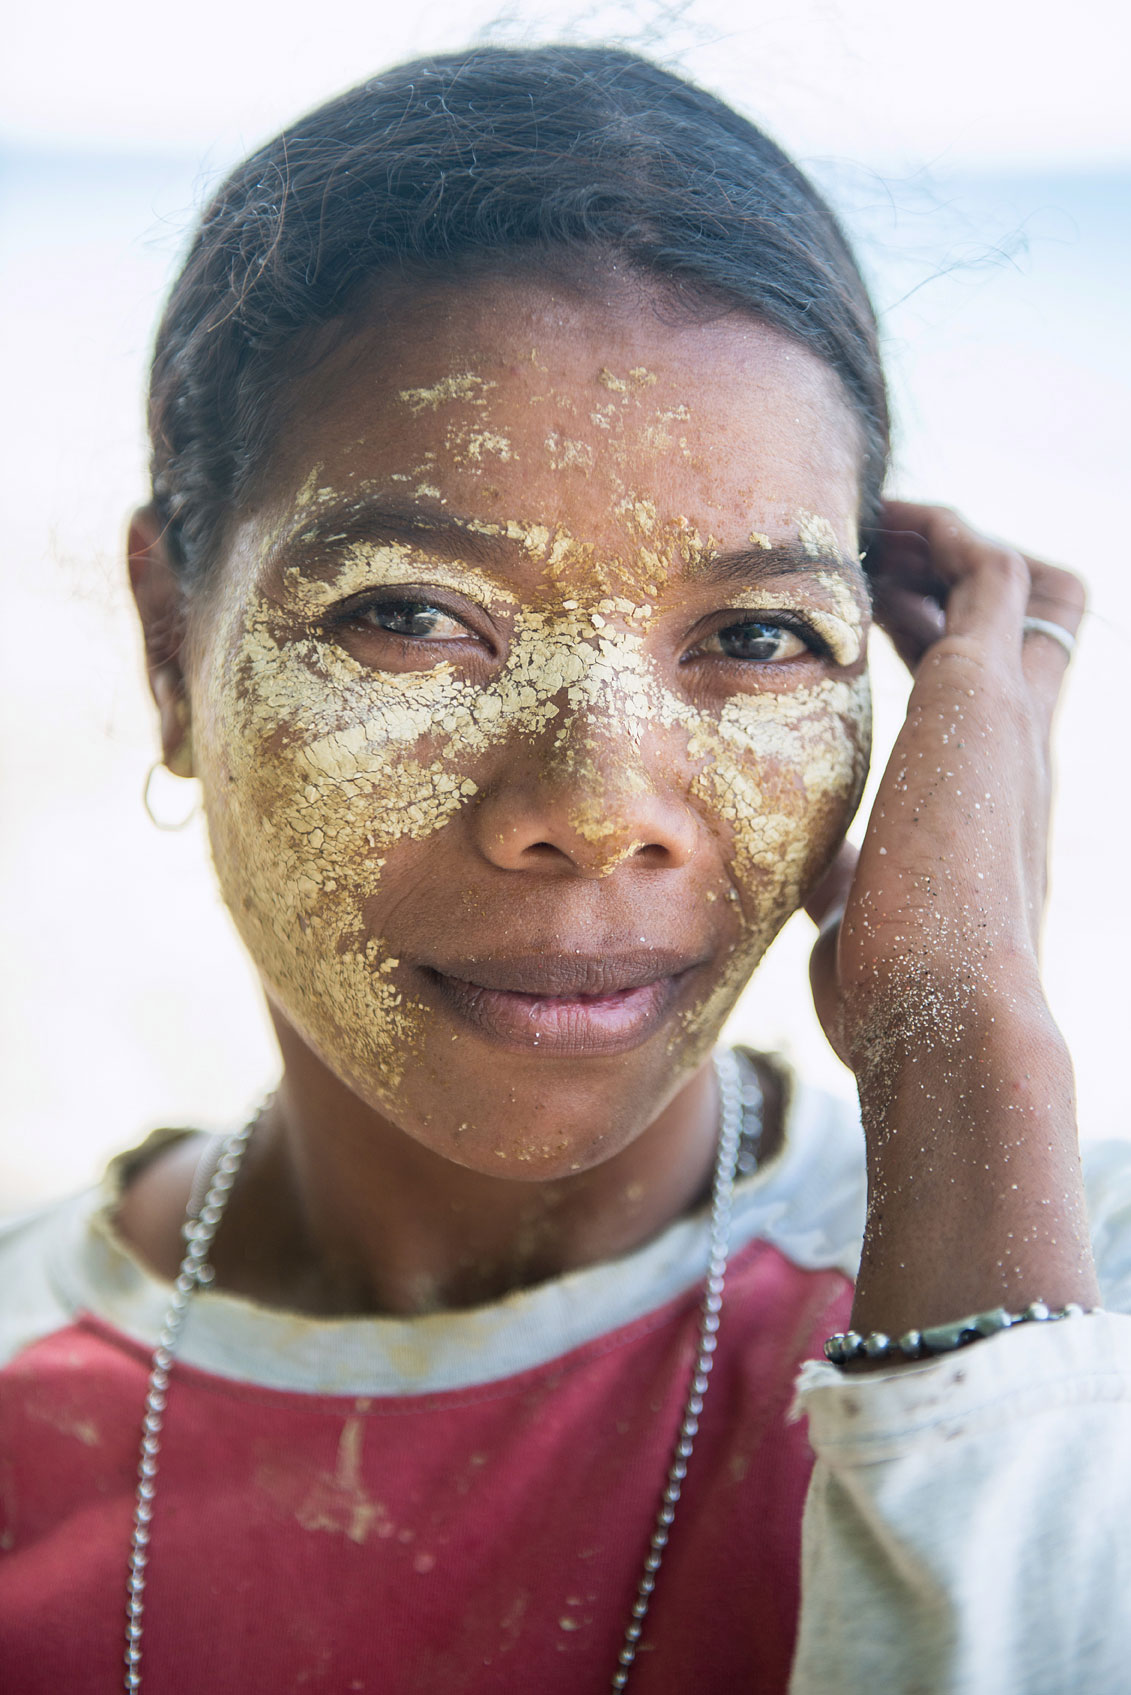 A face mask of rice and turmeric is a popular beauty aid.